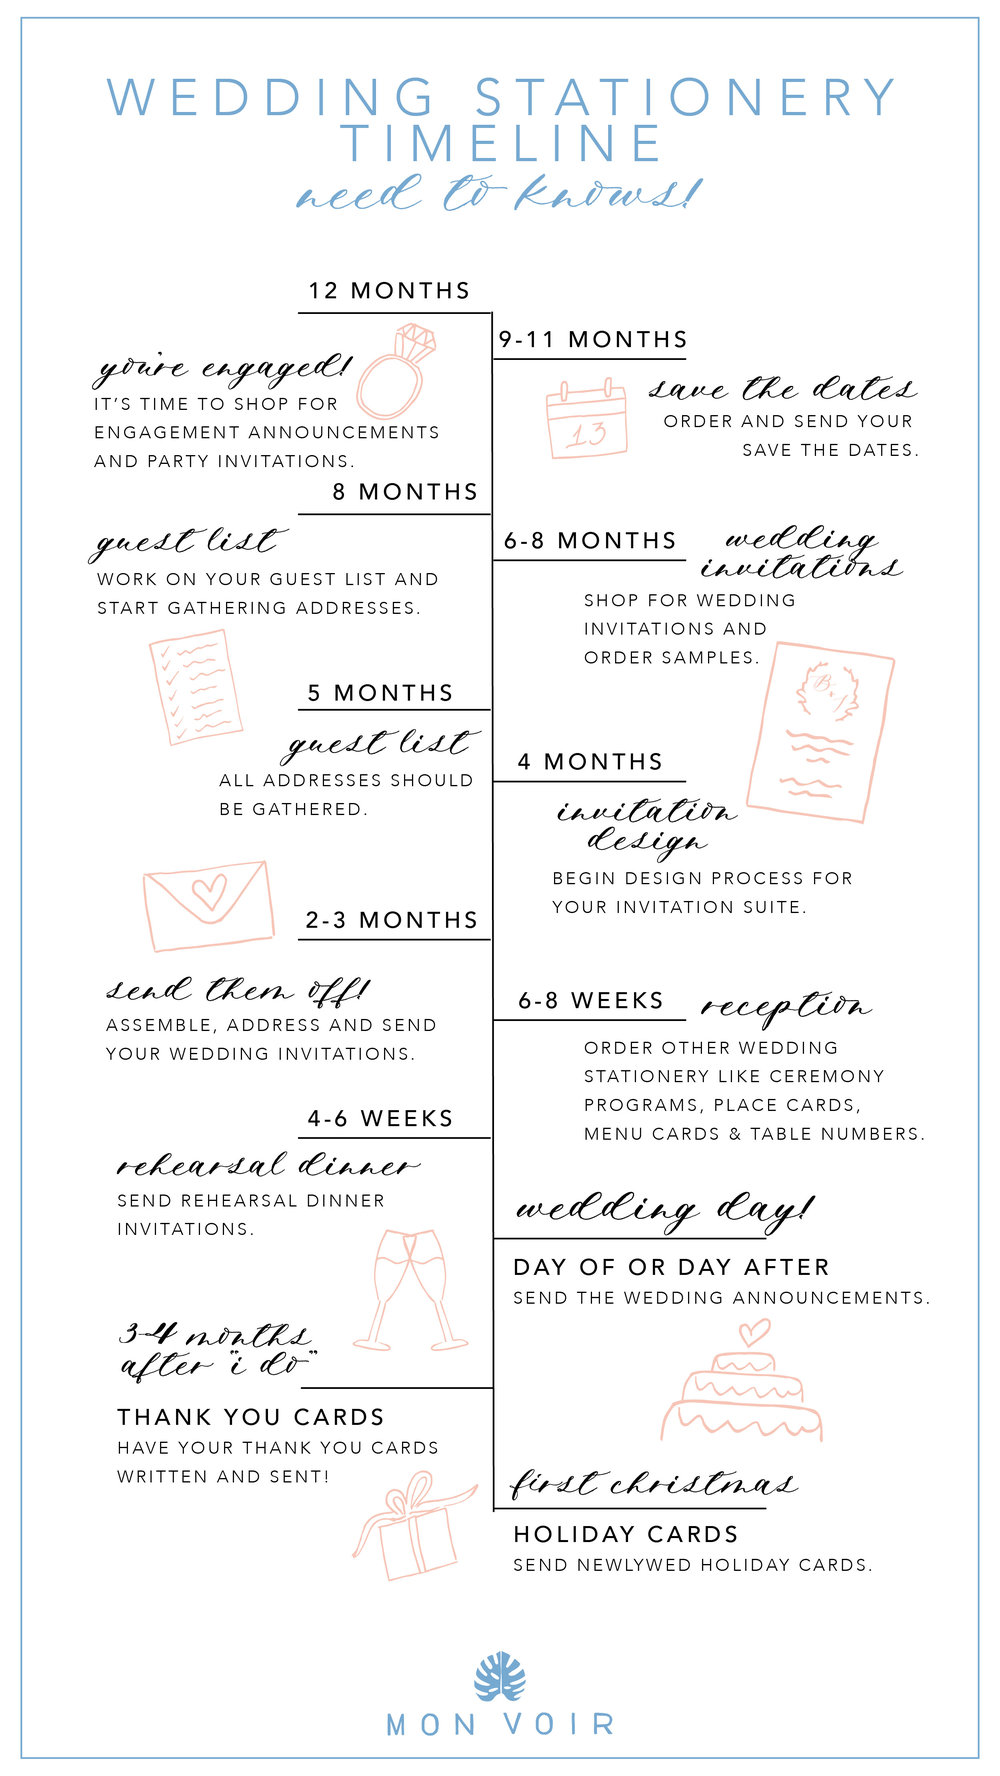 Wedding Stationery Timeline Mon Voir